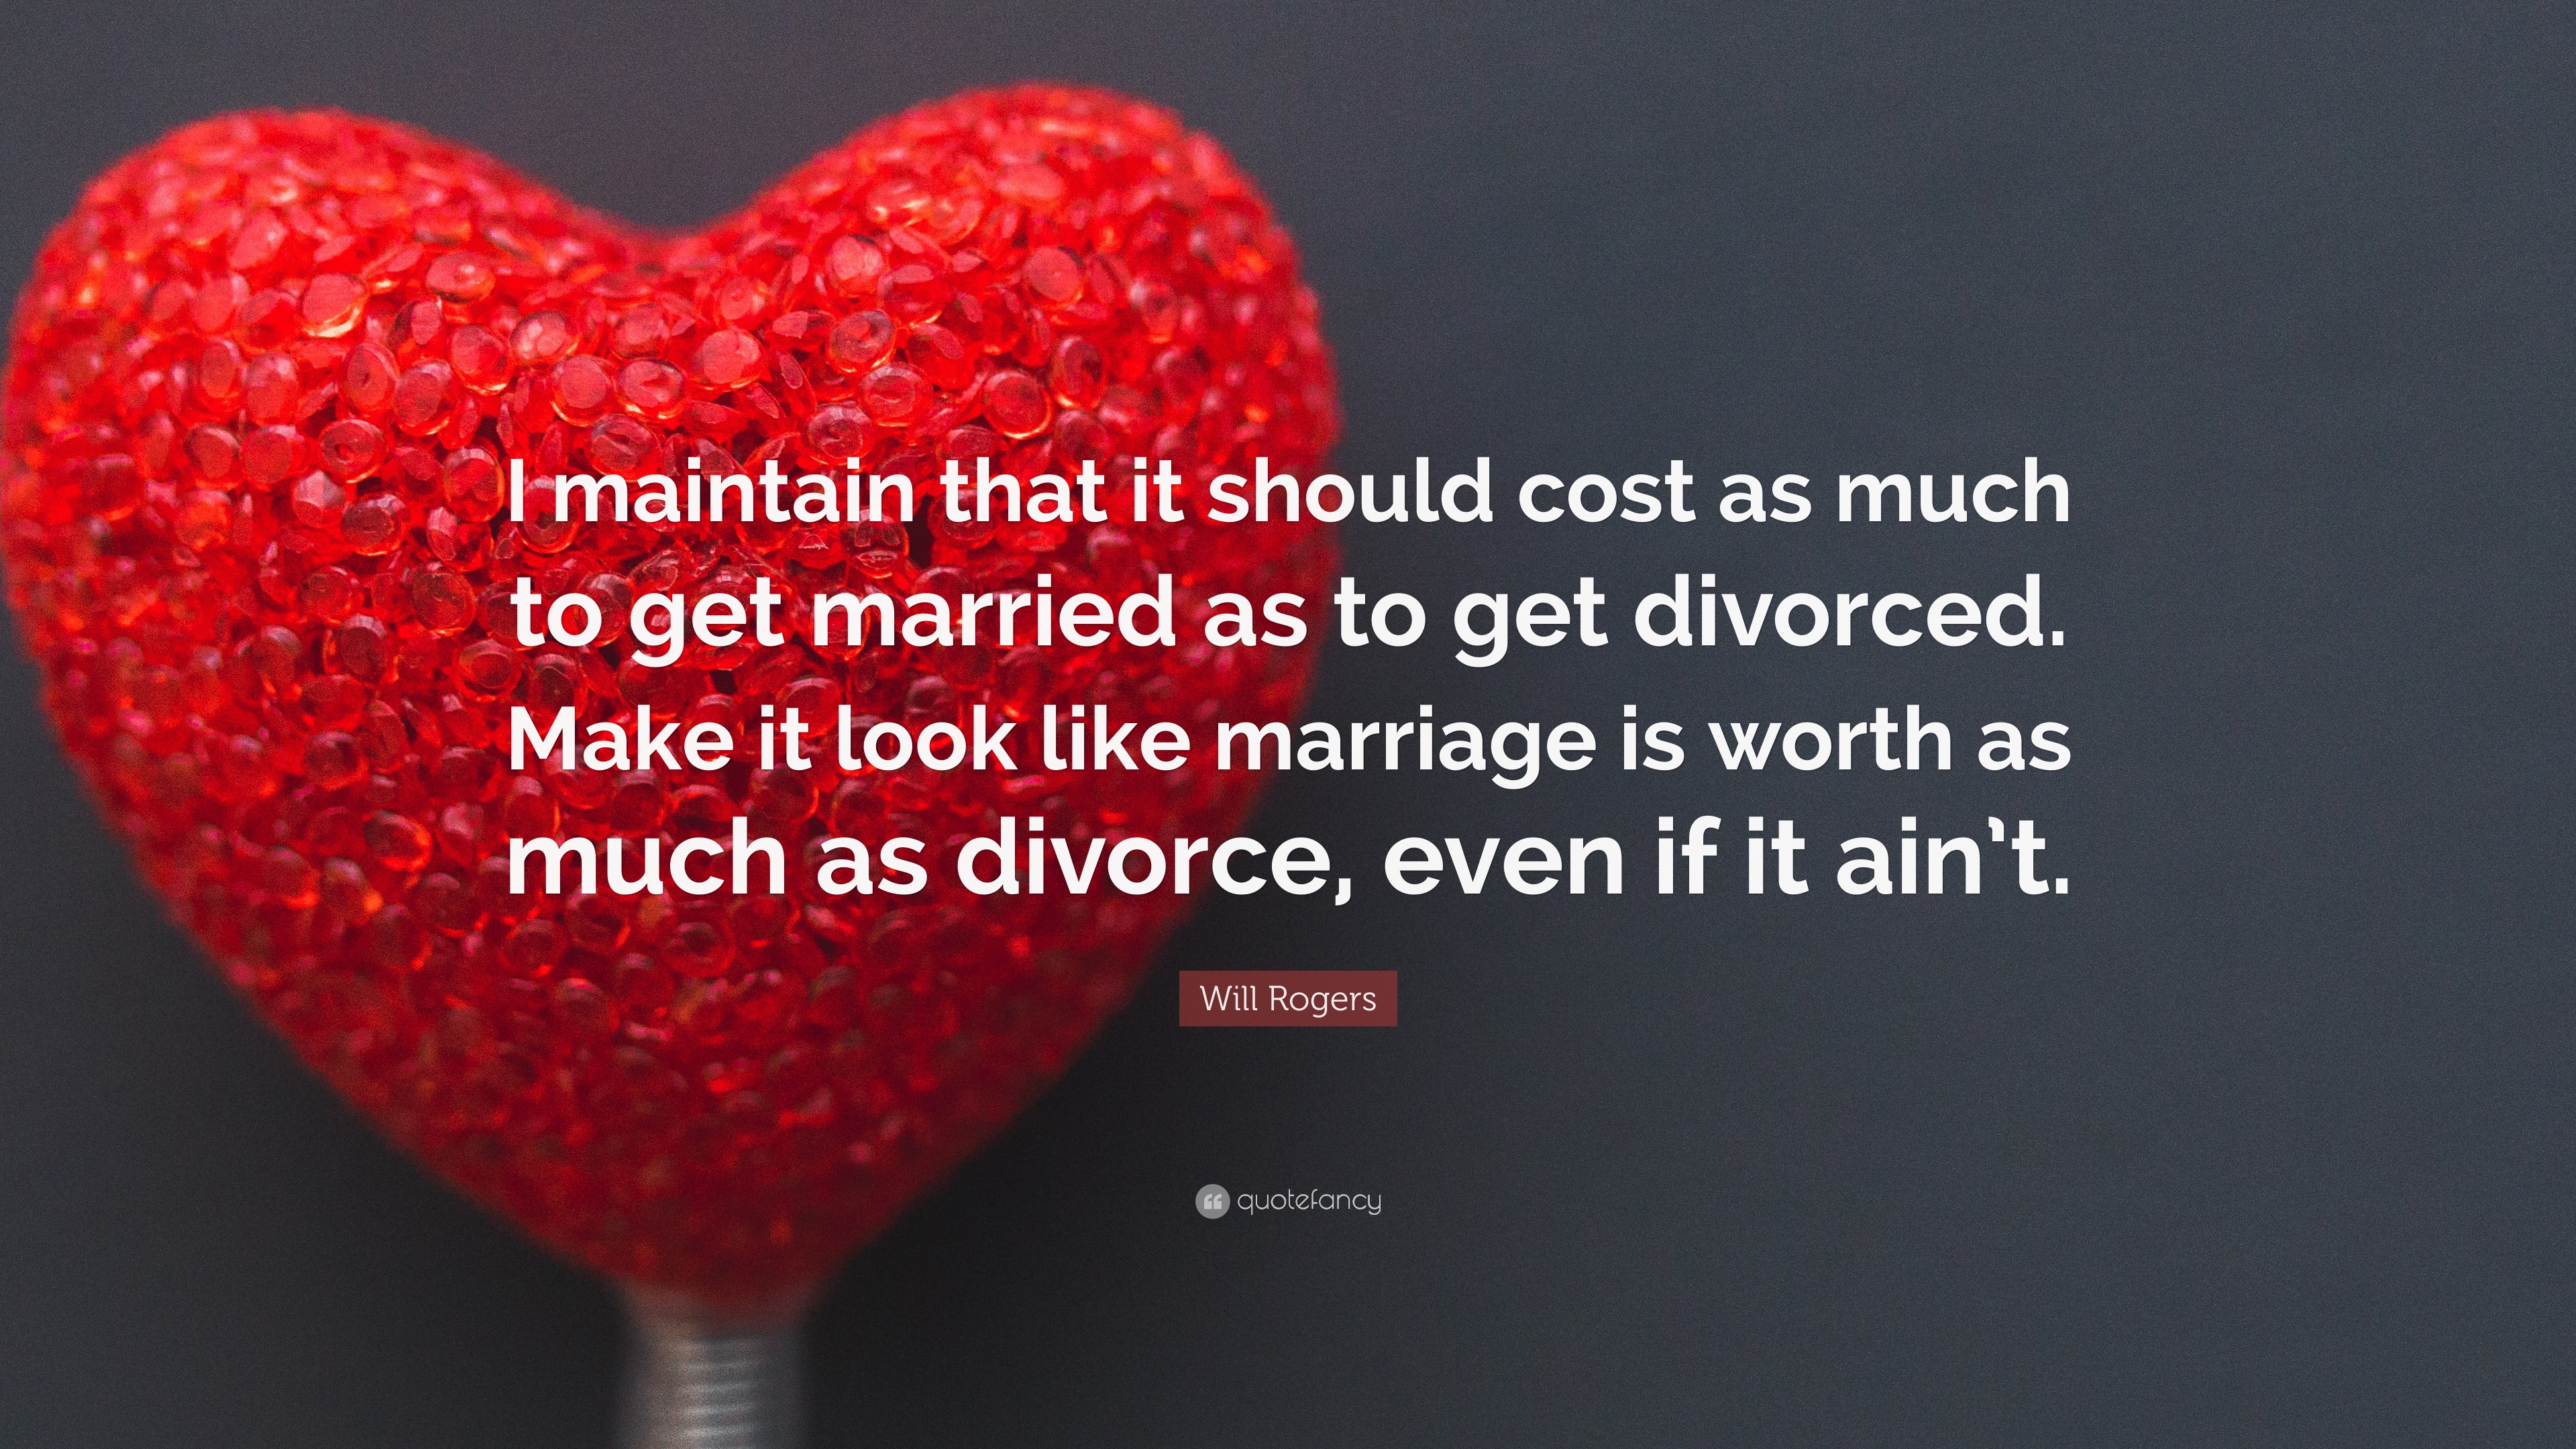 Is it worth it to get divorced